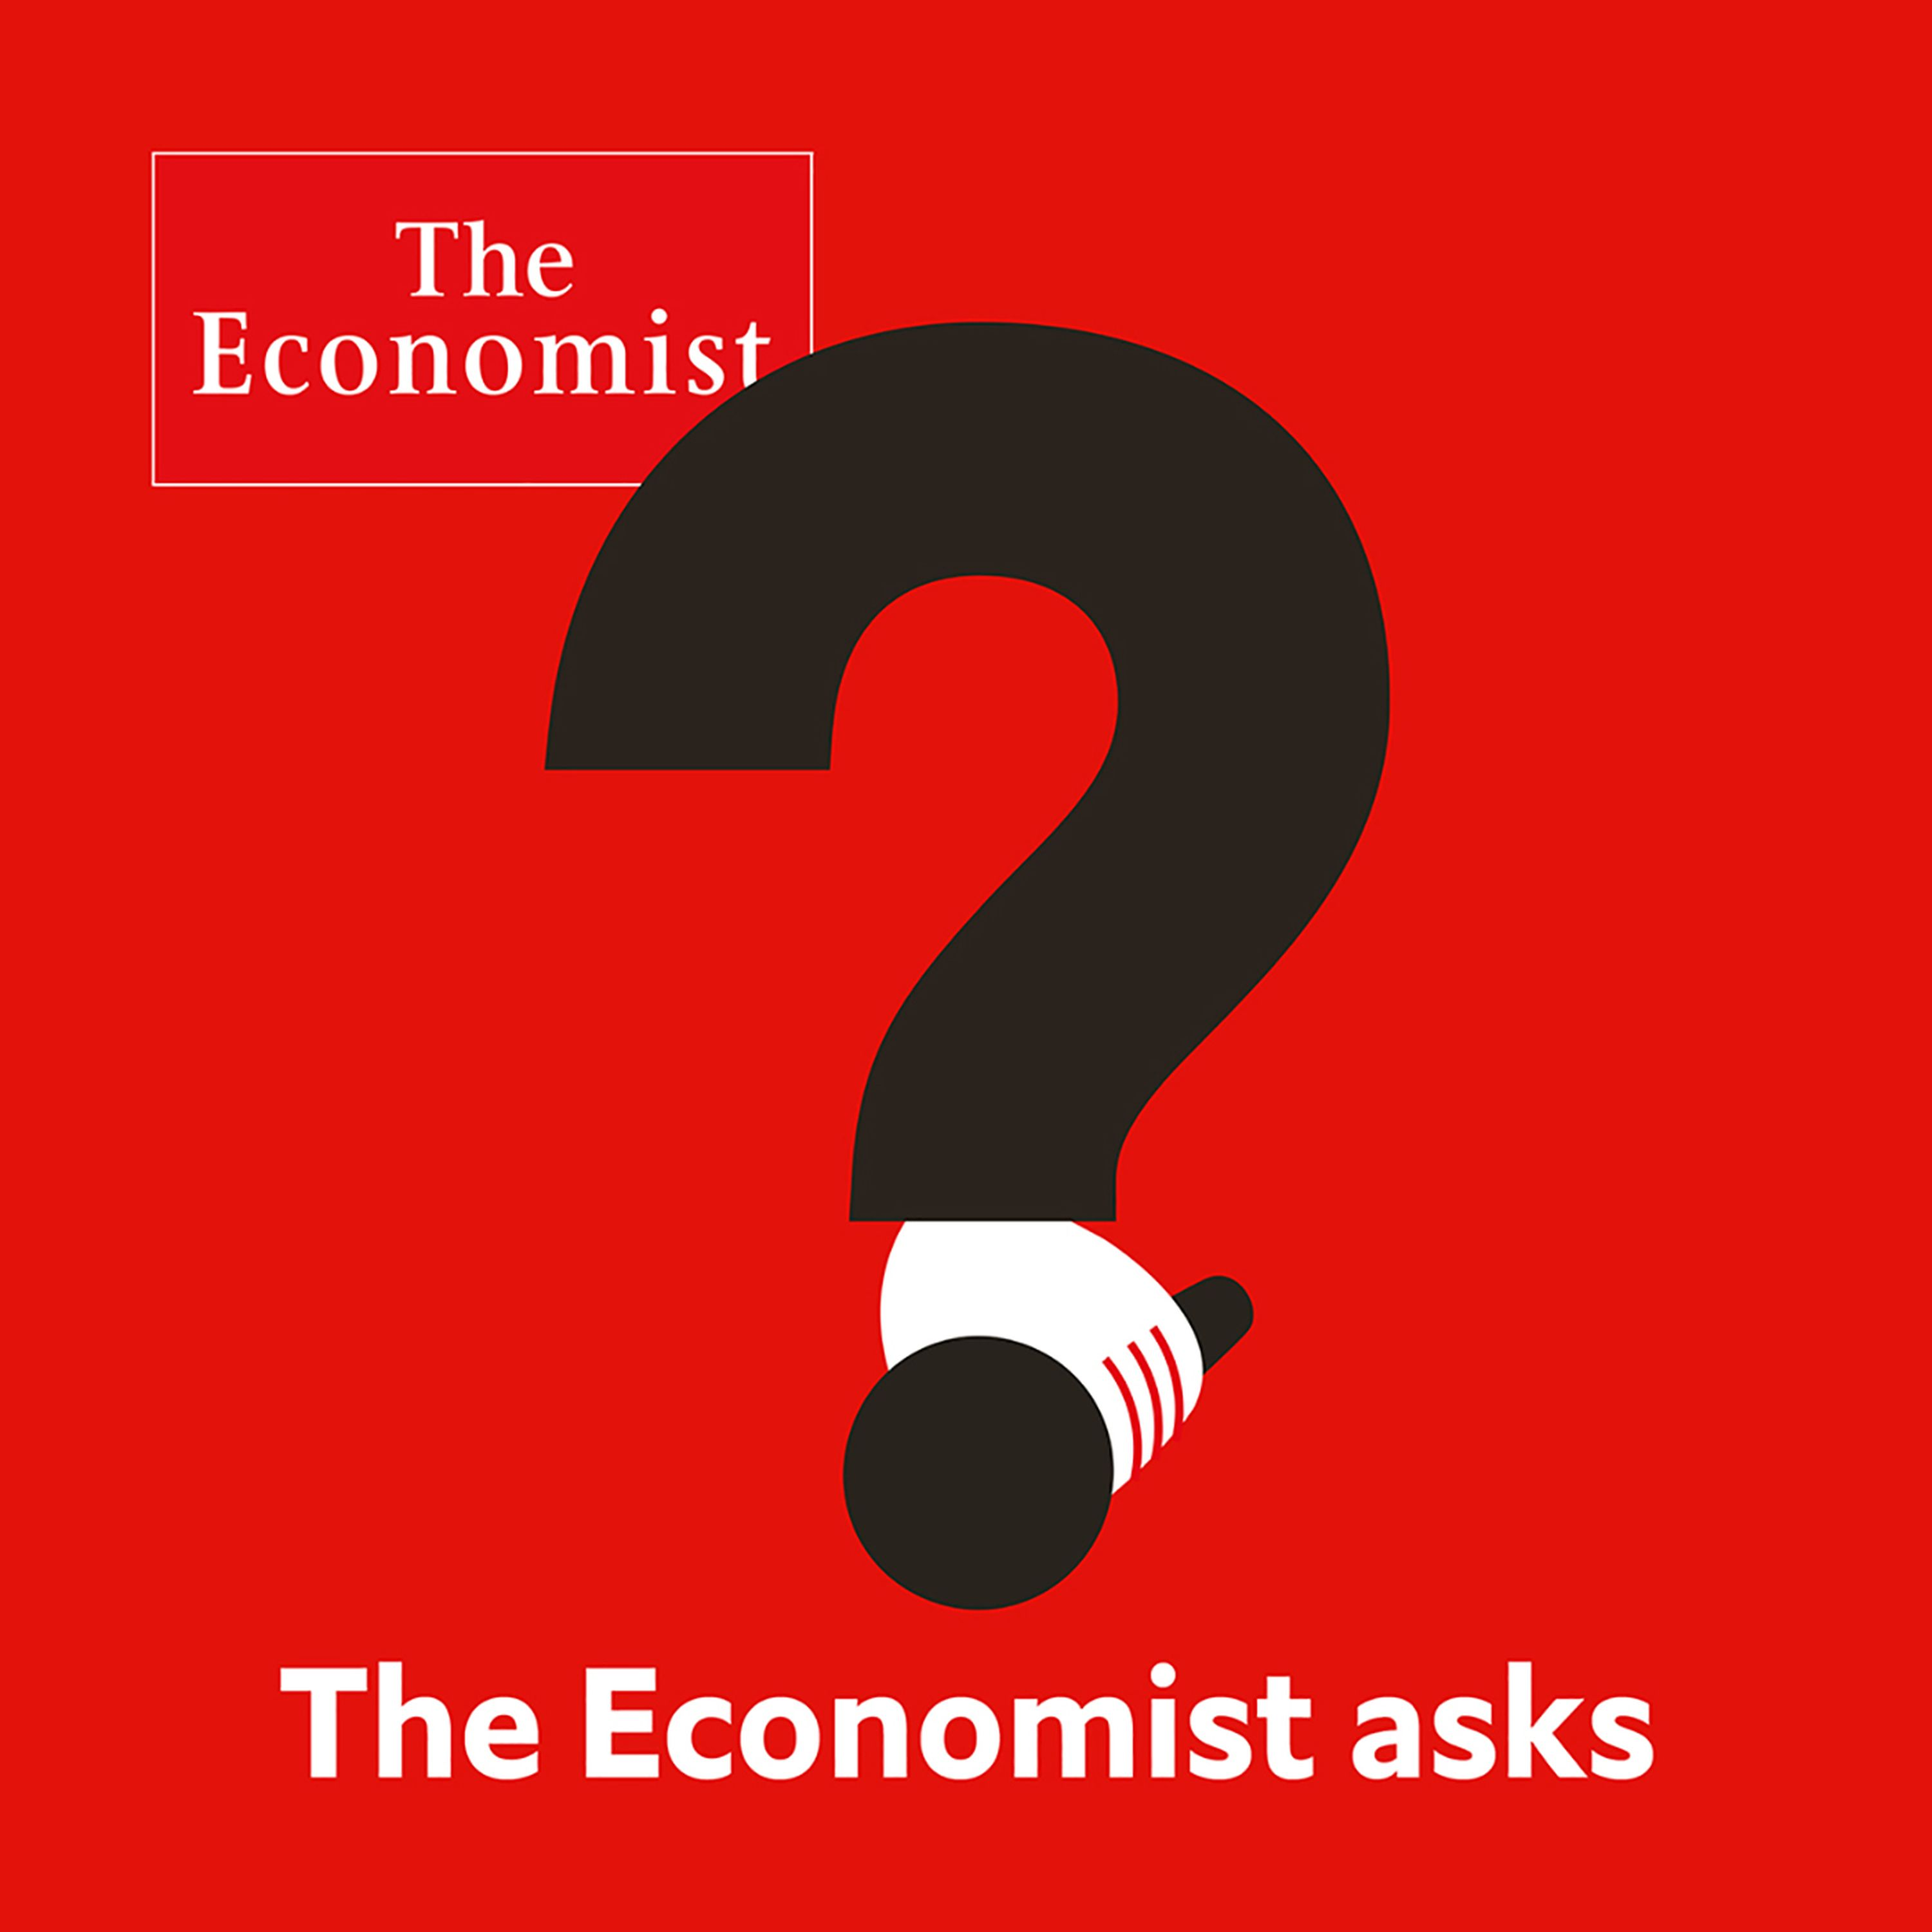 The Economist asks: Why is there always trouble in the Trump White House?